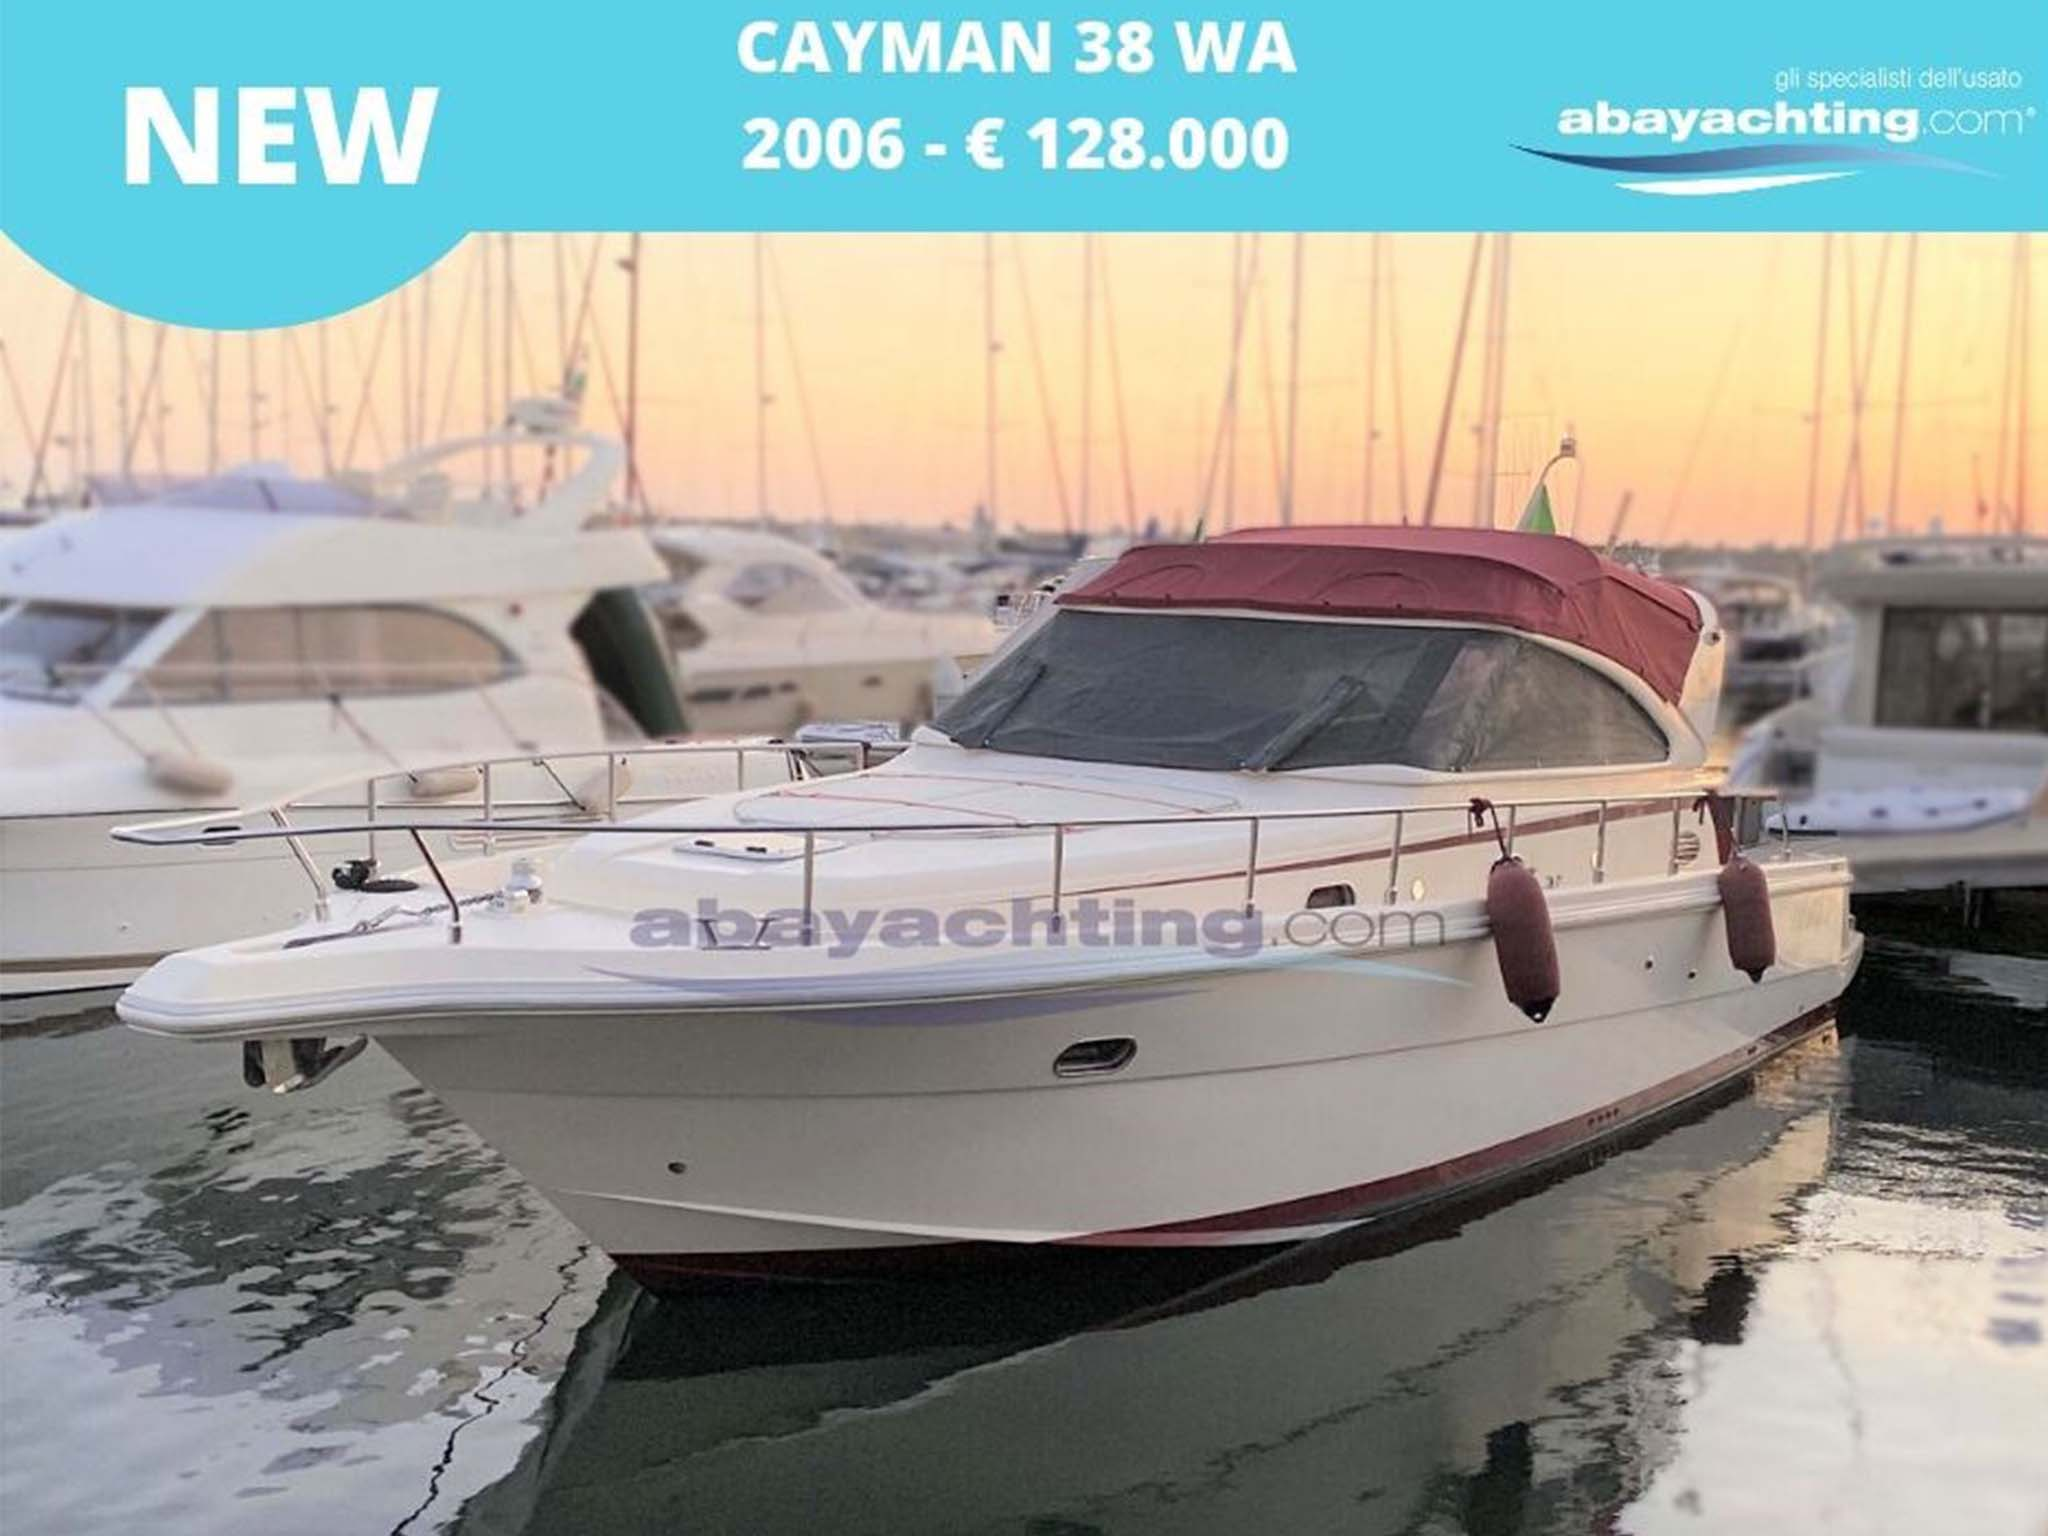 New arrival Cayman 38 WA